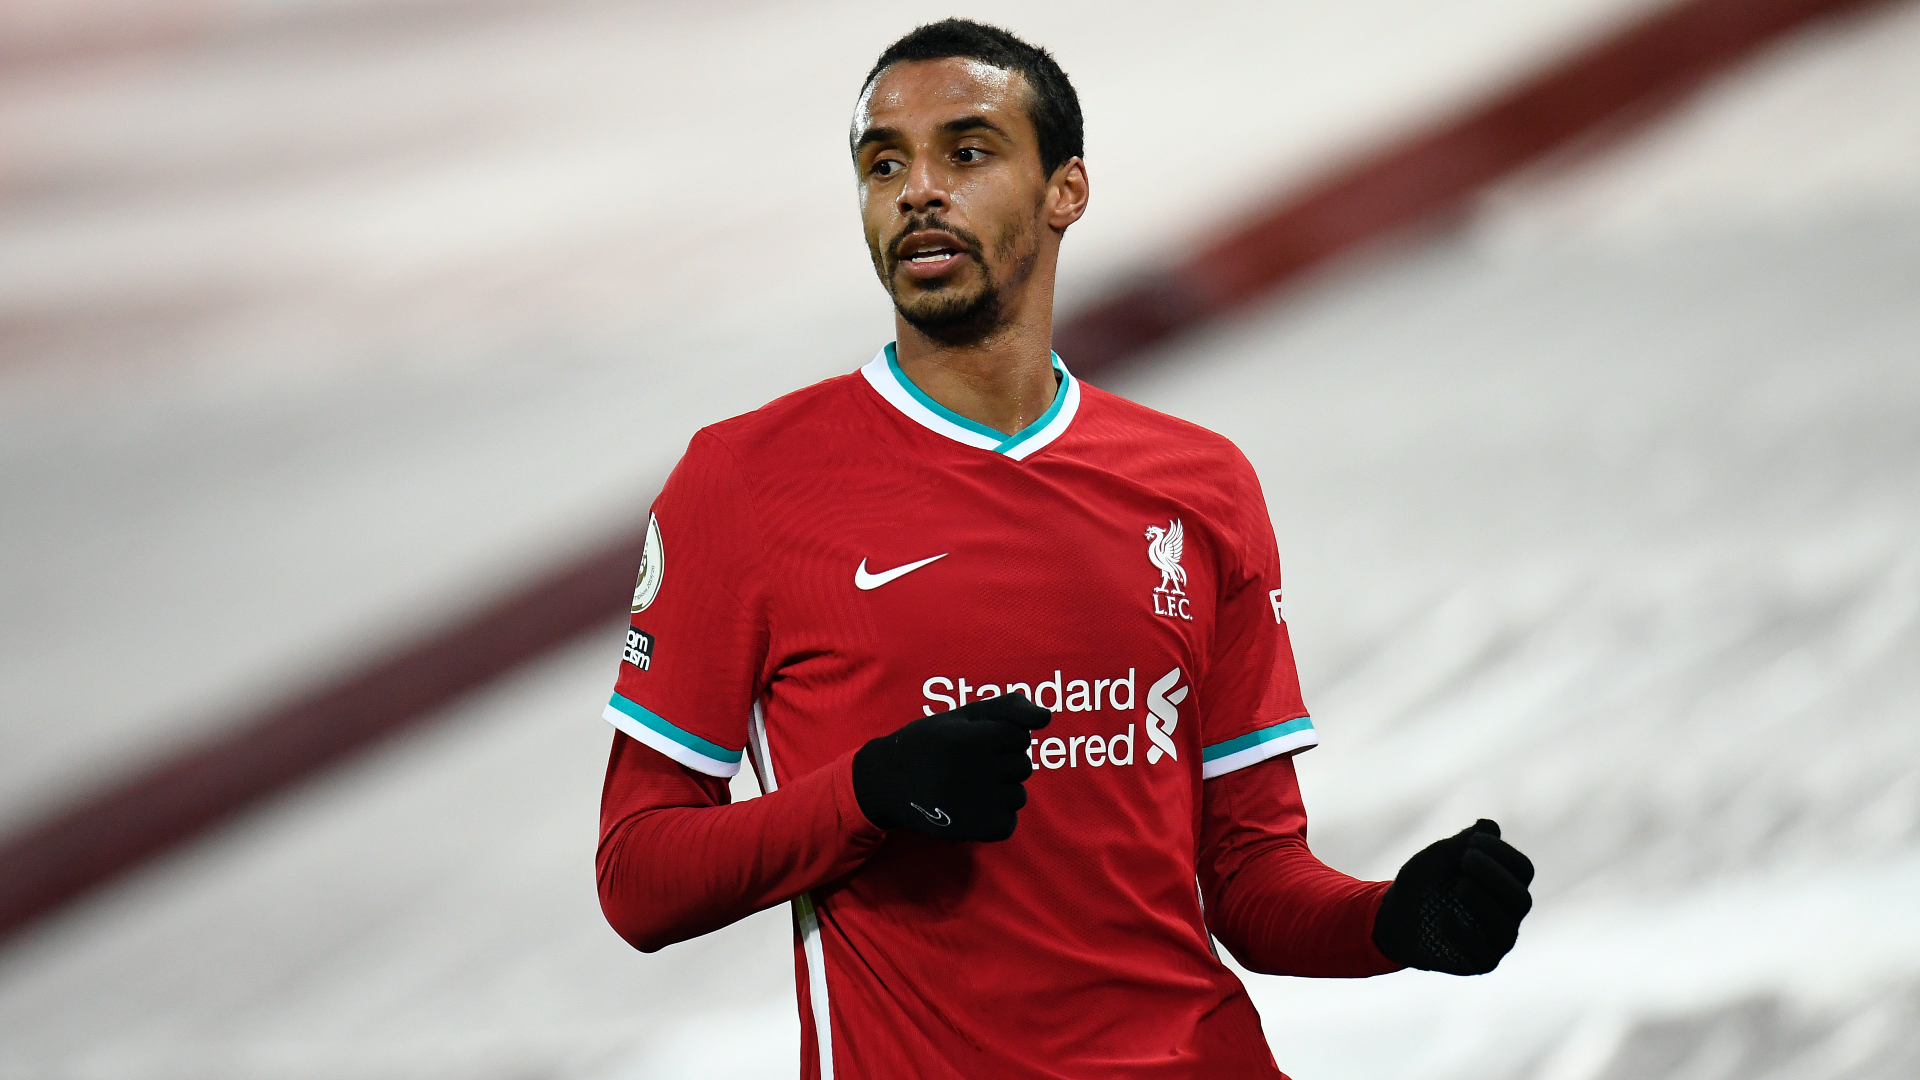 Liverpool confirm Matip out for the season following Kabak & Davies captures